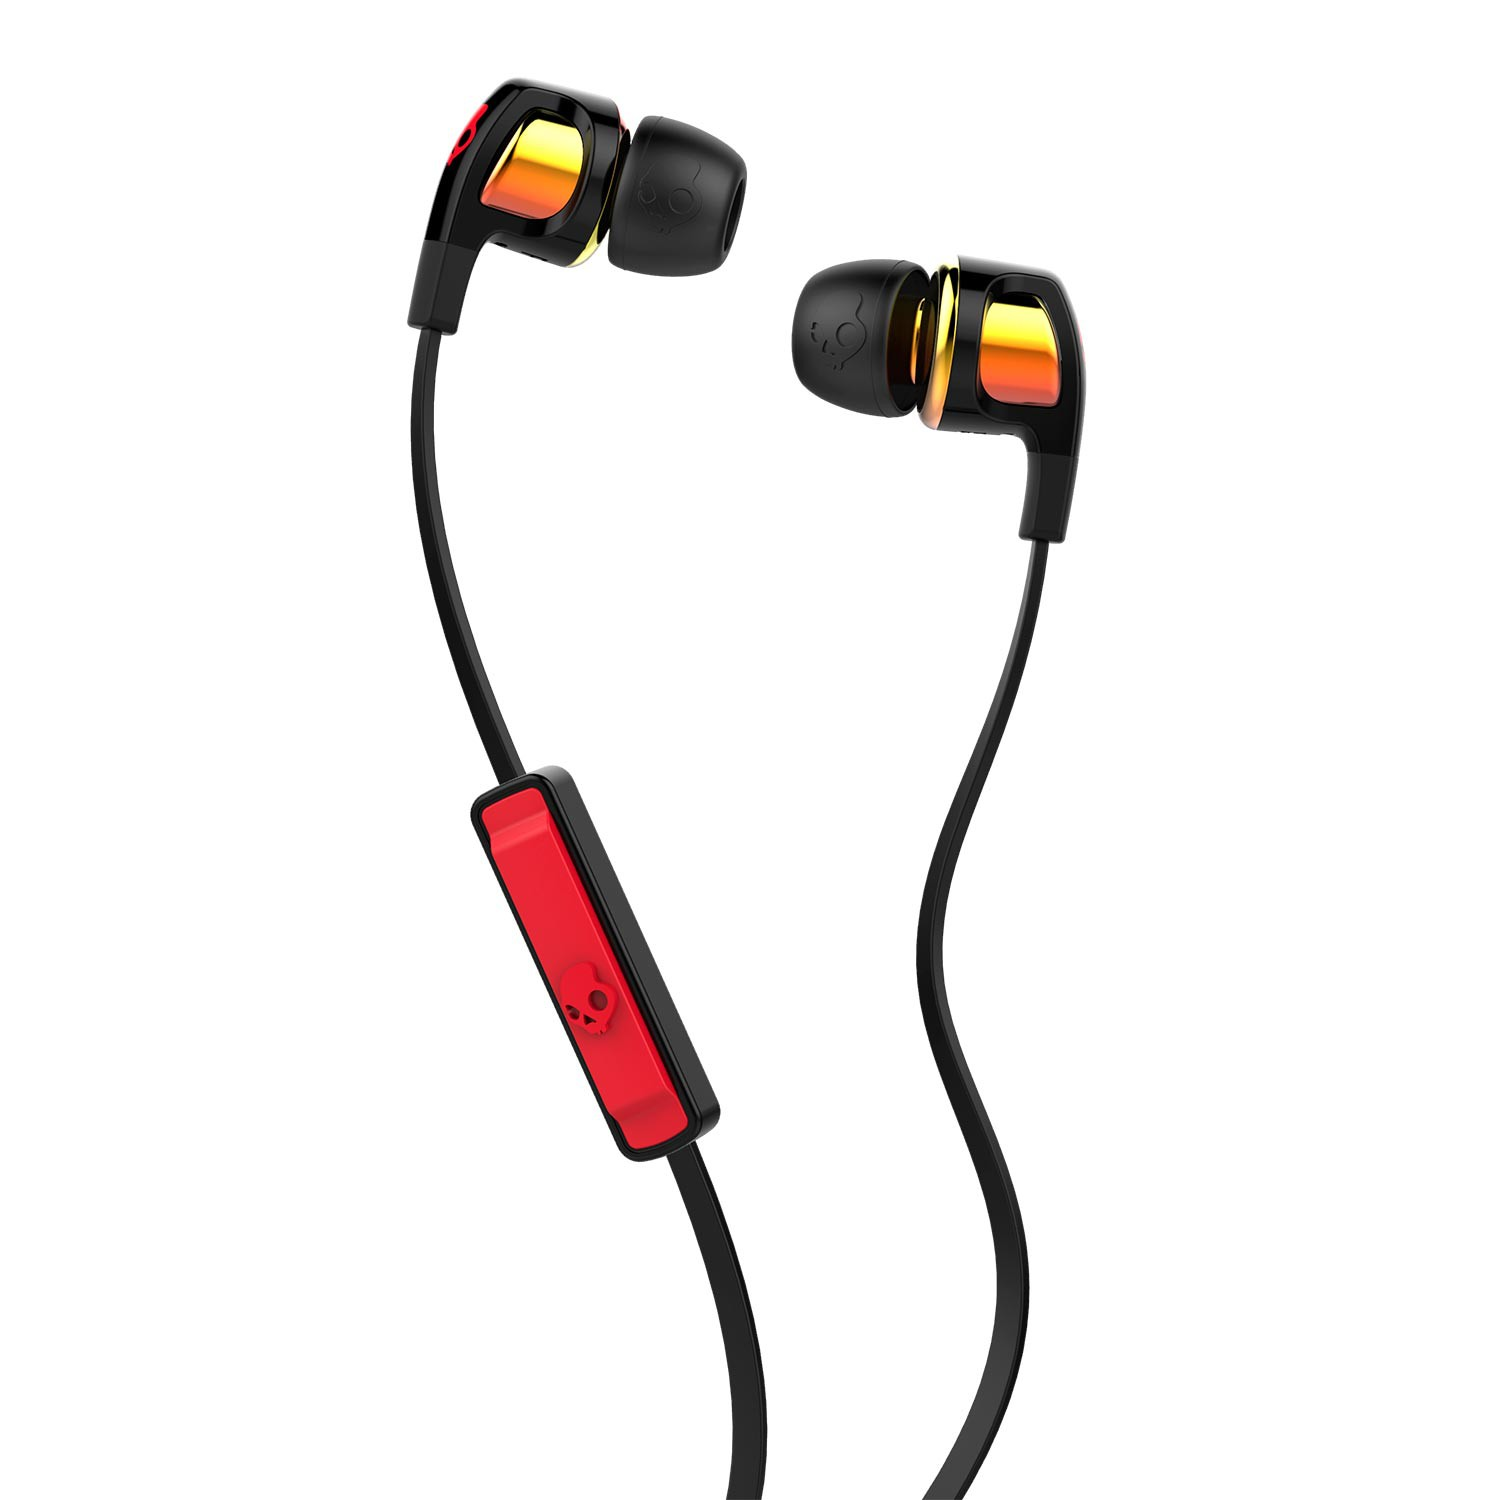 Sluchátka Skullcandy Smokin' Buds 2 spaced out iridium/black